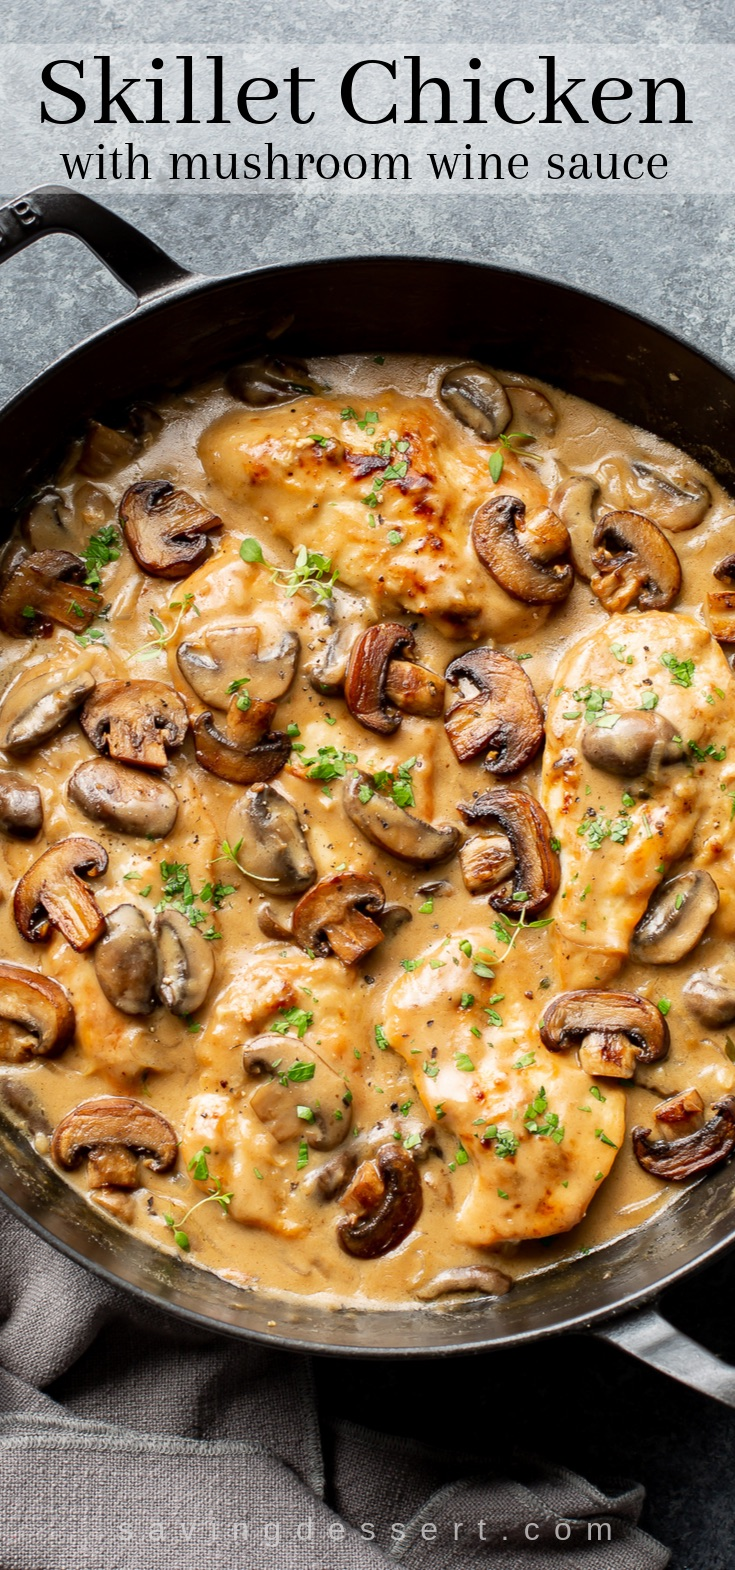 Photo of Skillet Chicken and Mushroom Wine Sauce